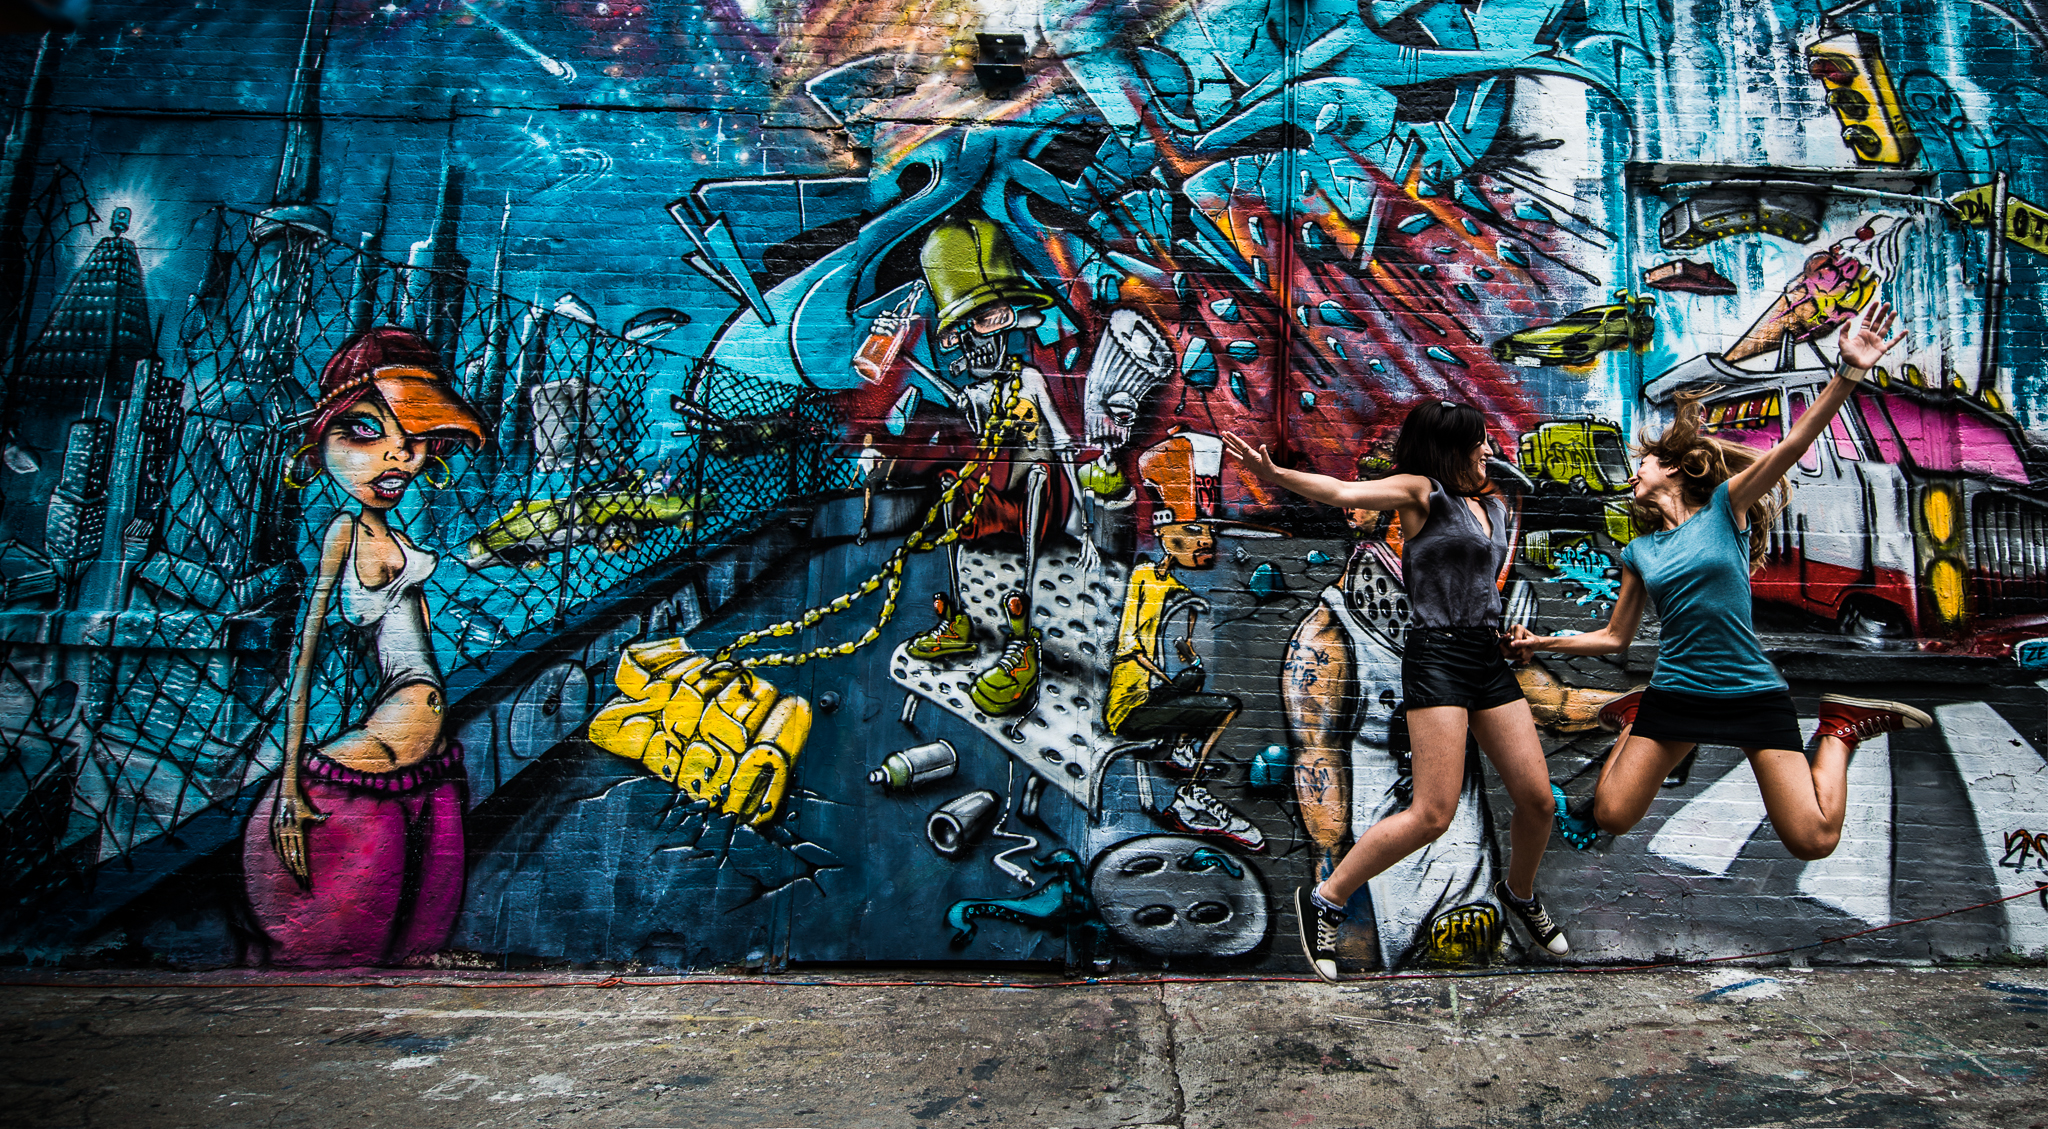 5pointz New york streetphoto 2013 850px-3